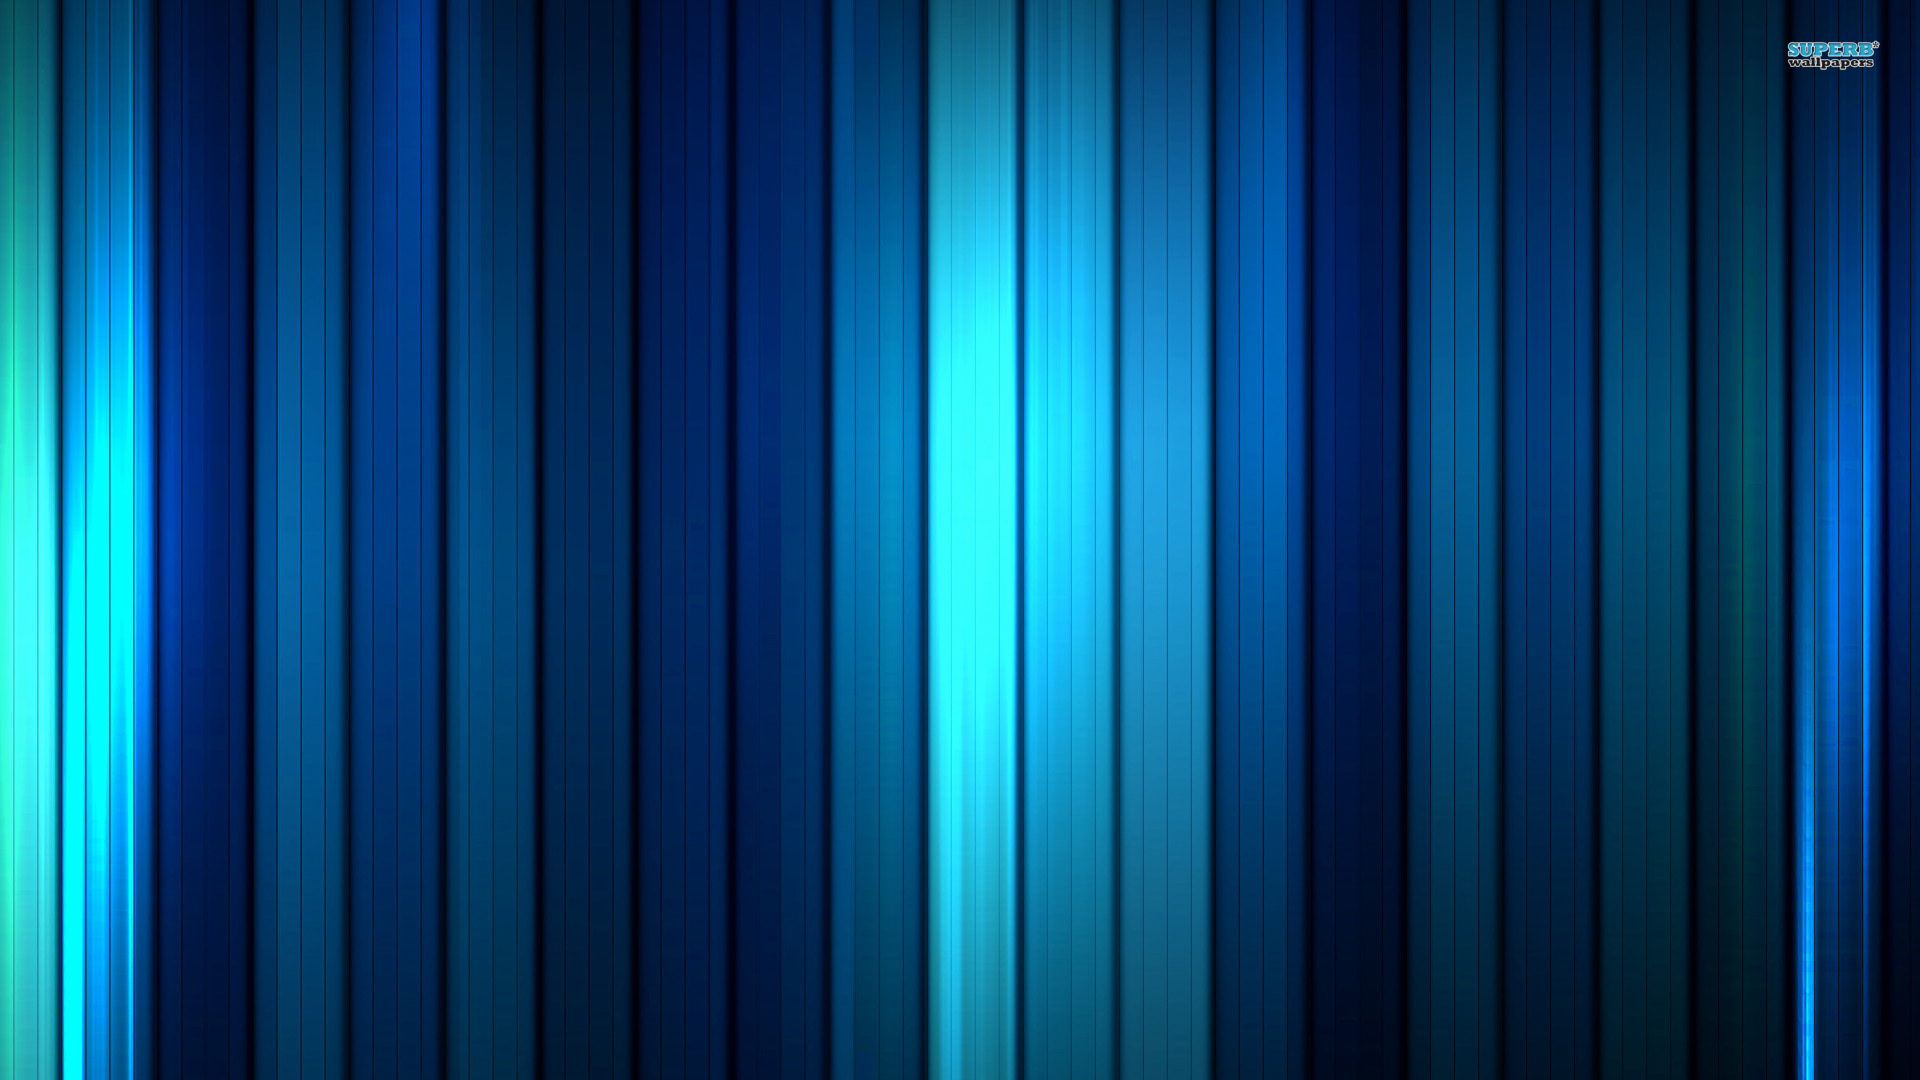 3K Blue Stripes Wallpaper   MixHD wallpapers 1920x1080